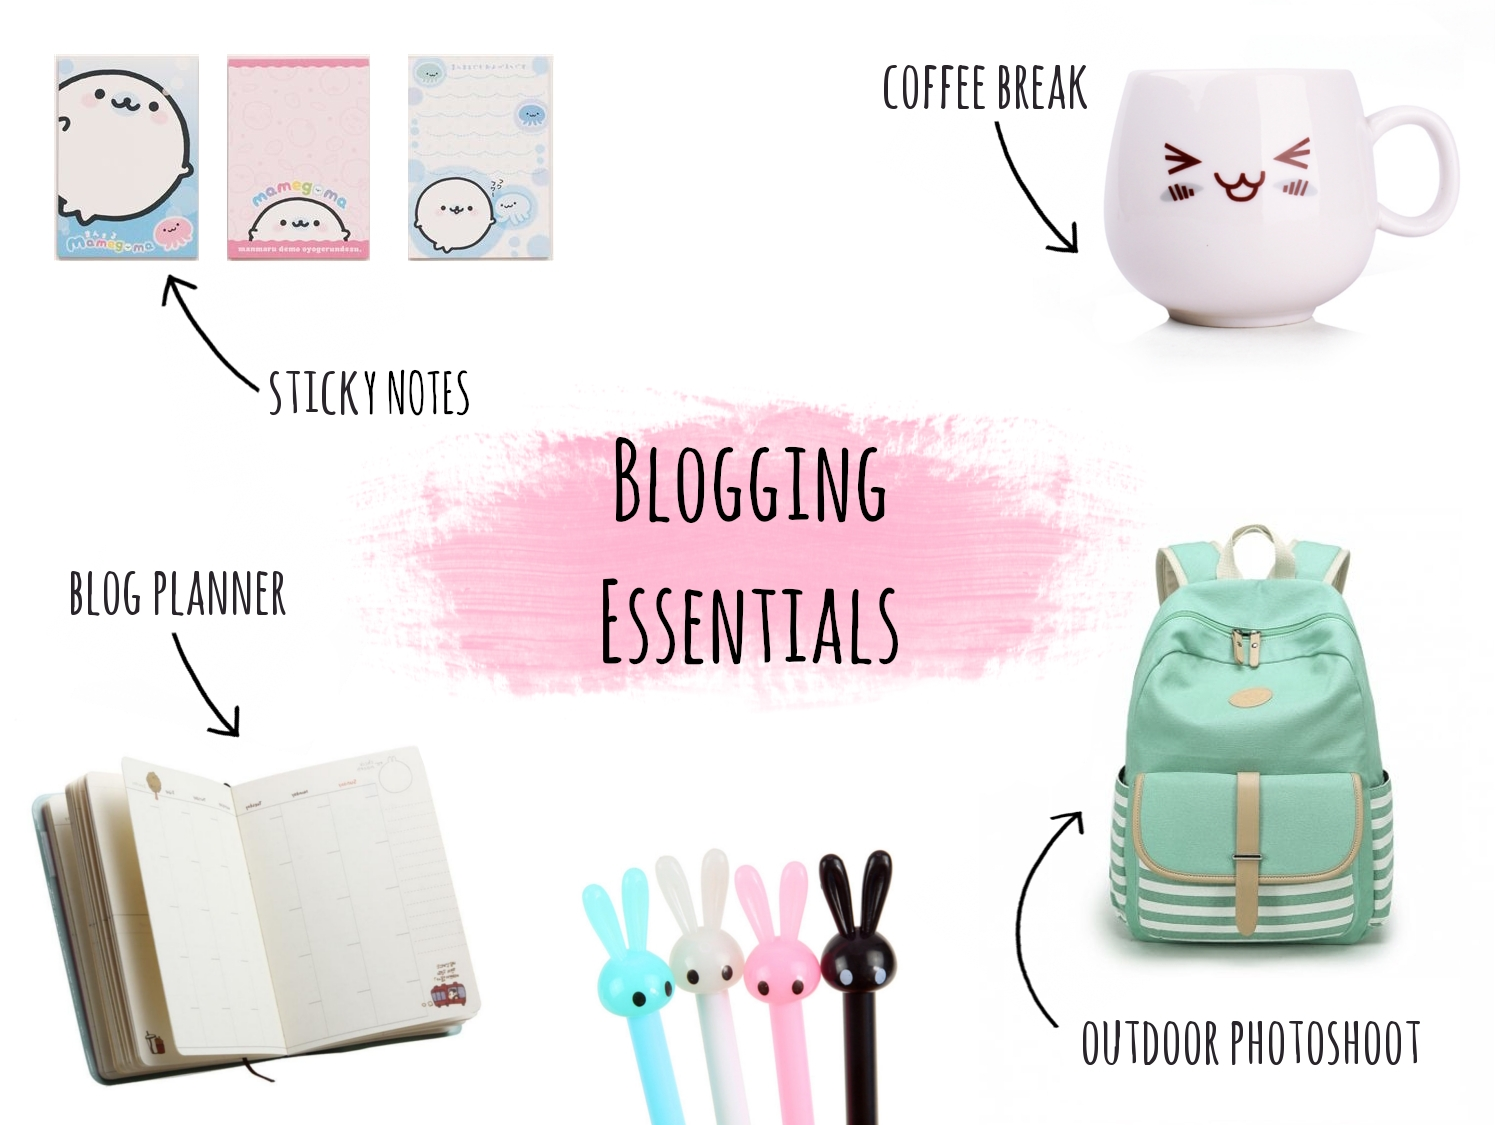 Blogging Essentials For Productive Work